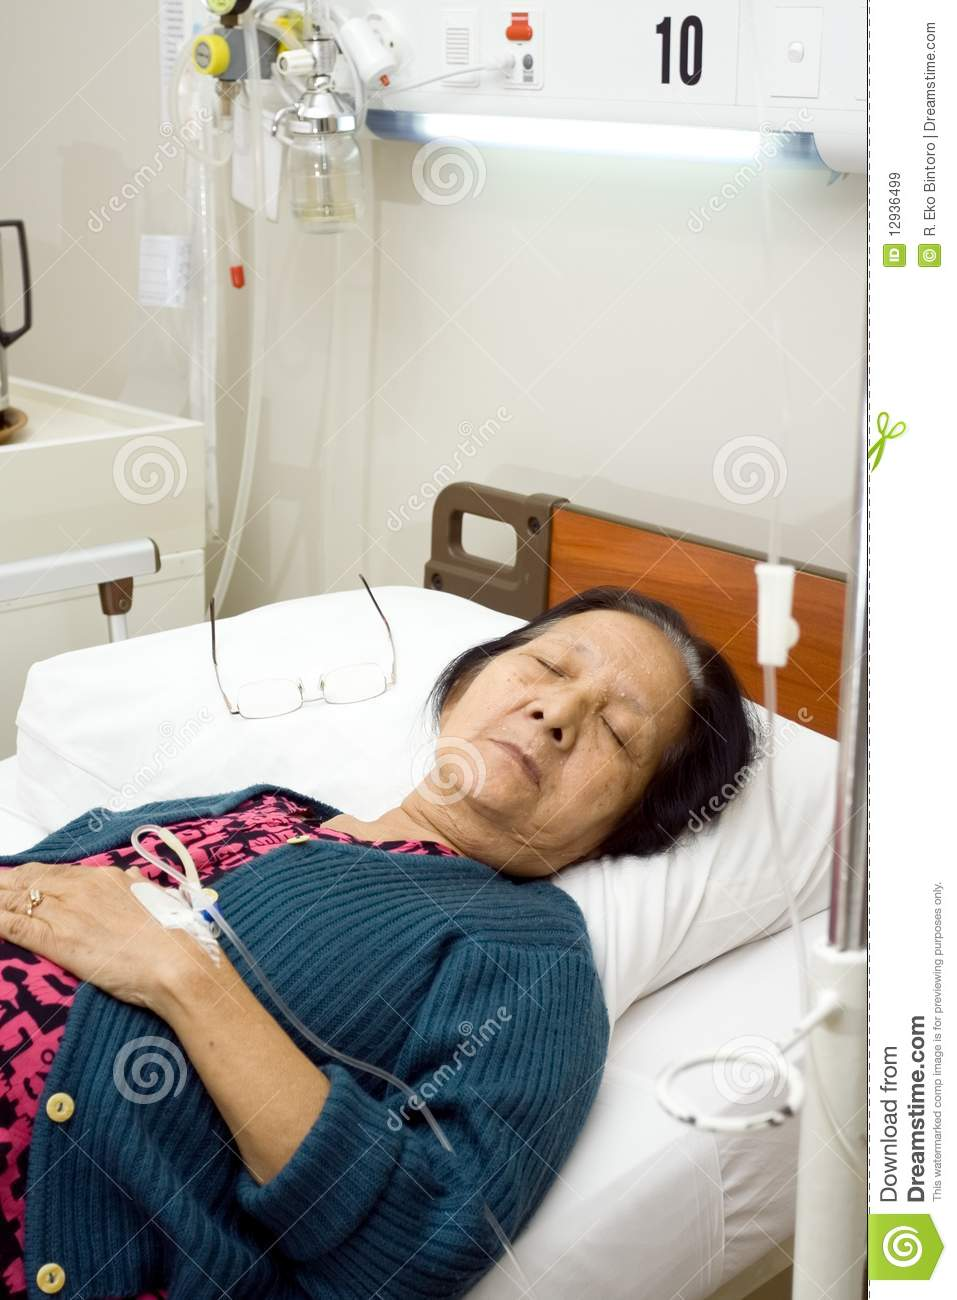 Patient Lady On Sick Bed : Sick Elderly Patient Sleep In Bed Rest Royalty Free Stock Images ...